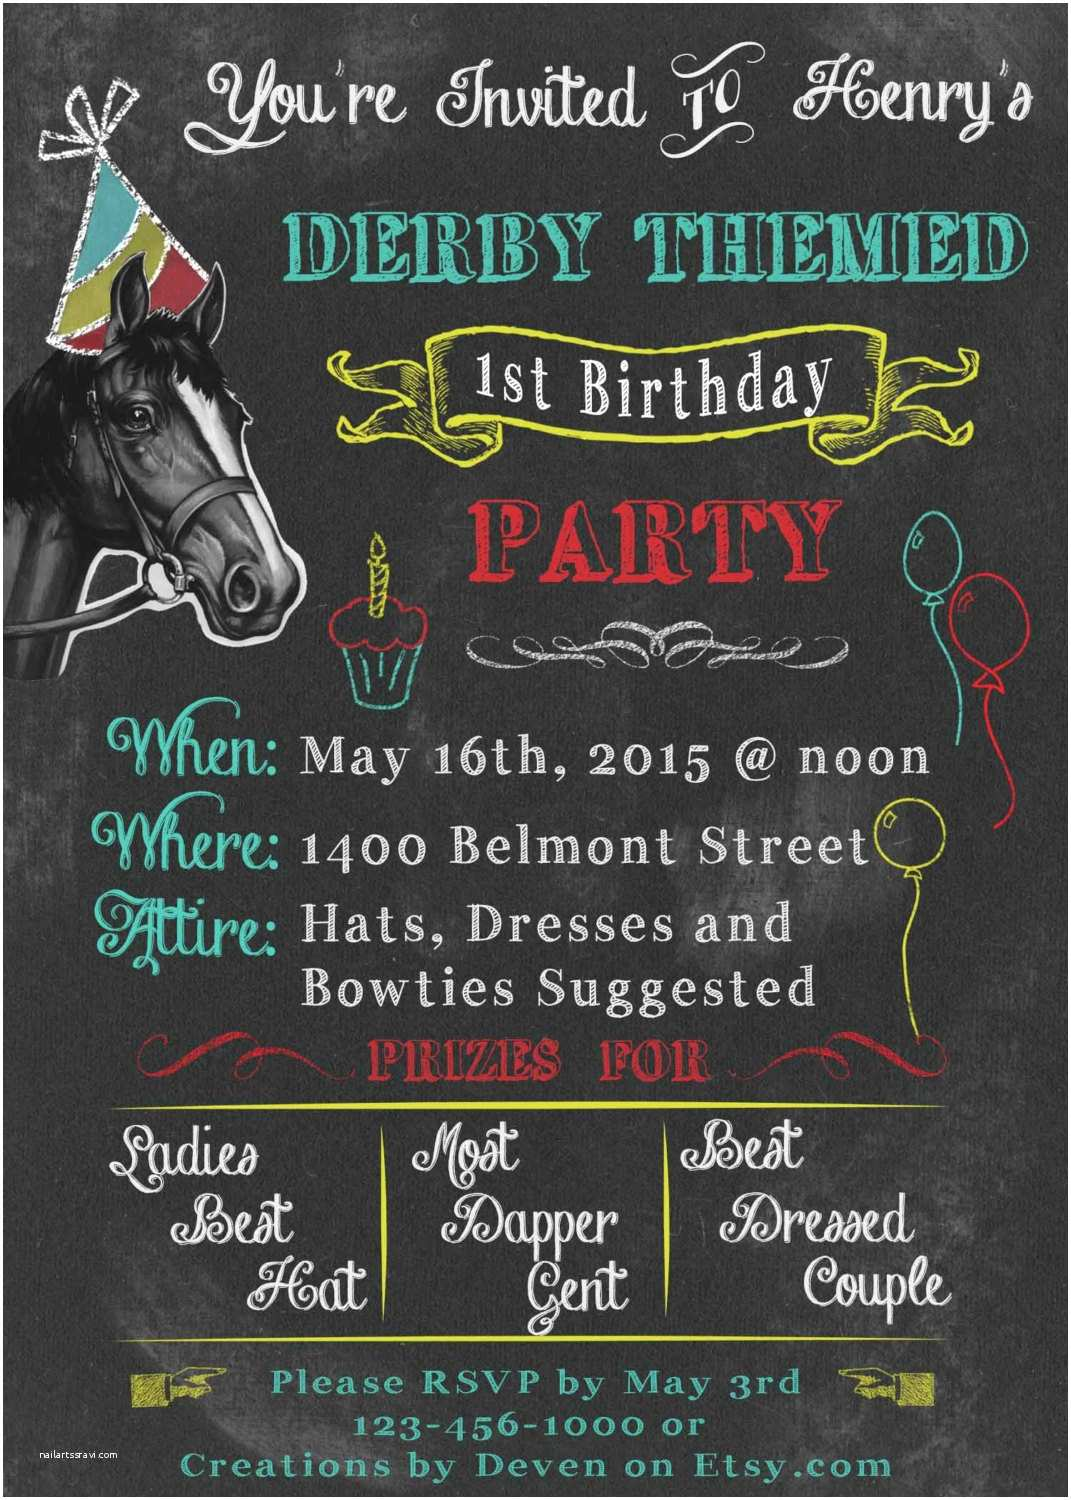 Derby Party Invitations Kentucky Derby themed Birthday Party Invitations Chalkboard